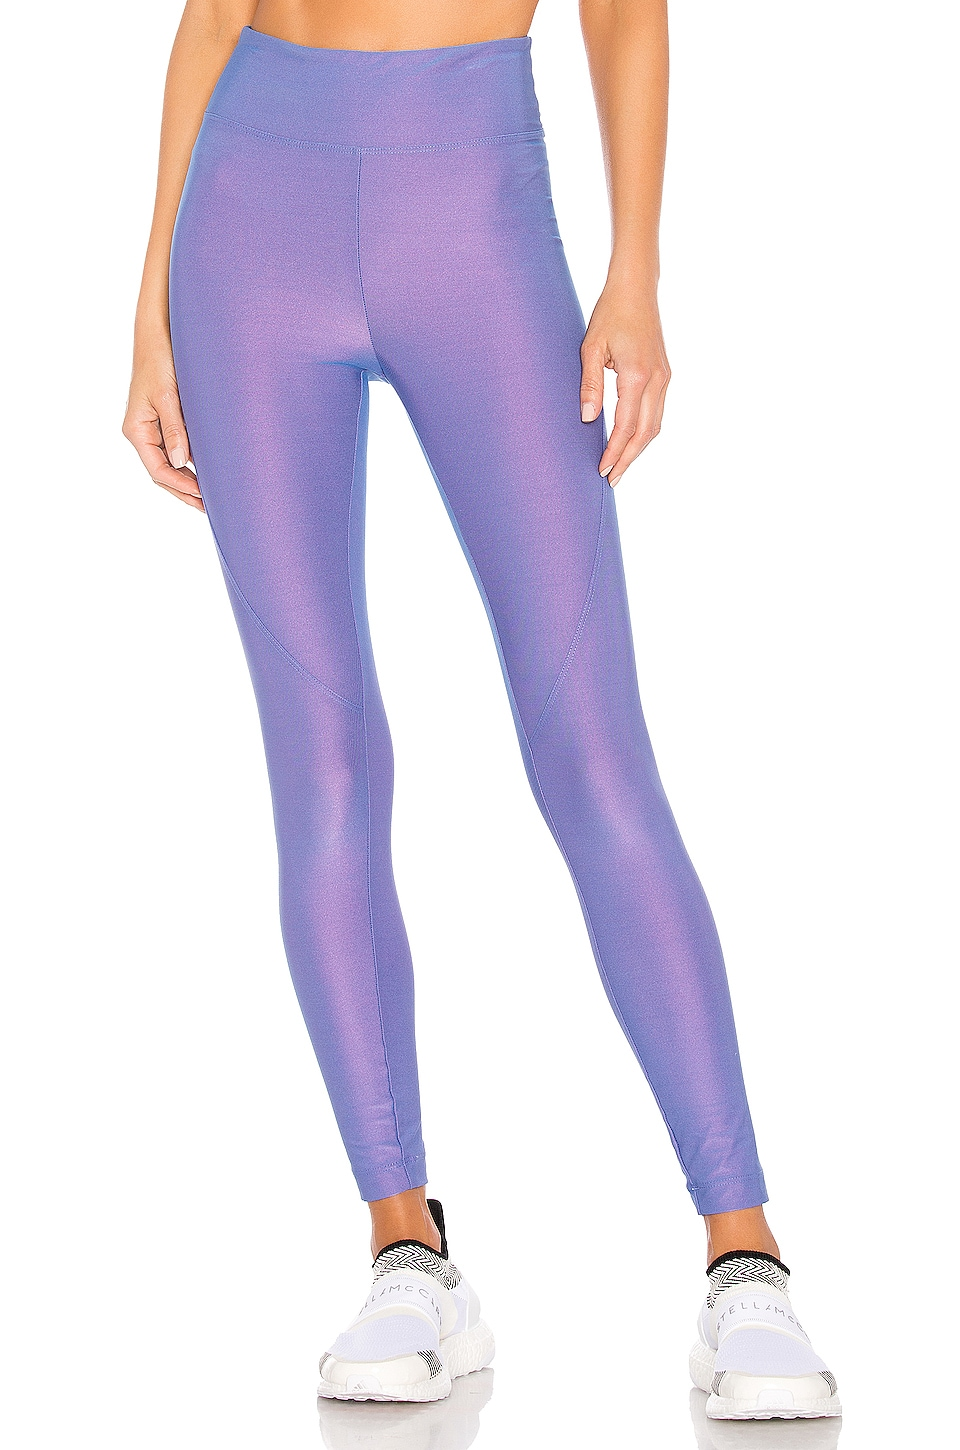 KORAL Magnet Iridescent High Rise Legging in Auralite